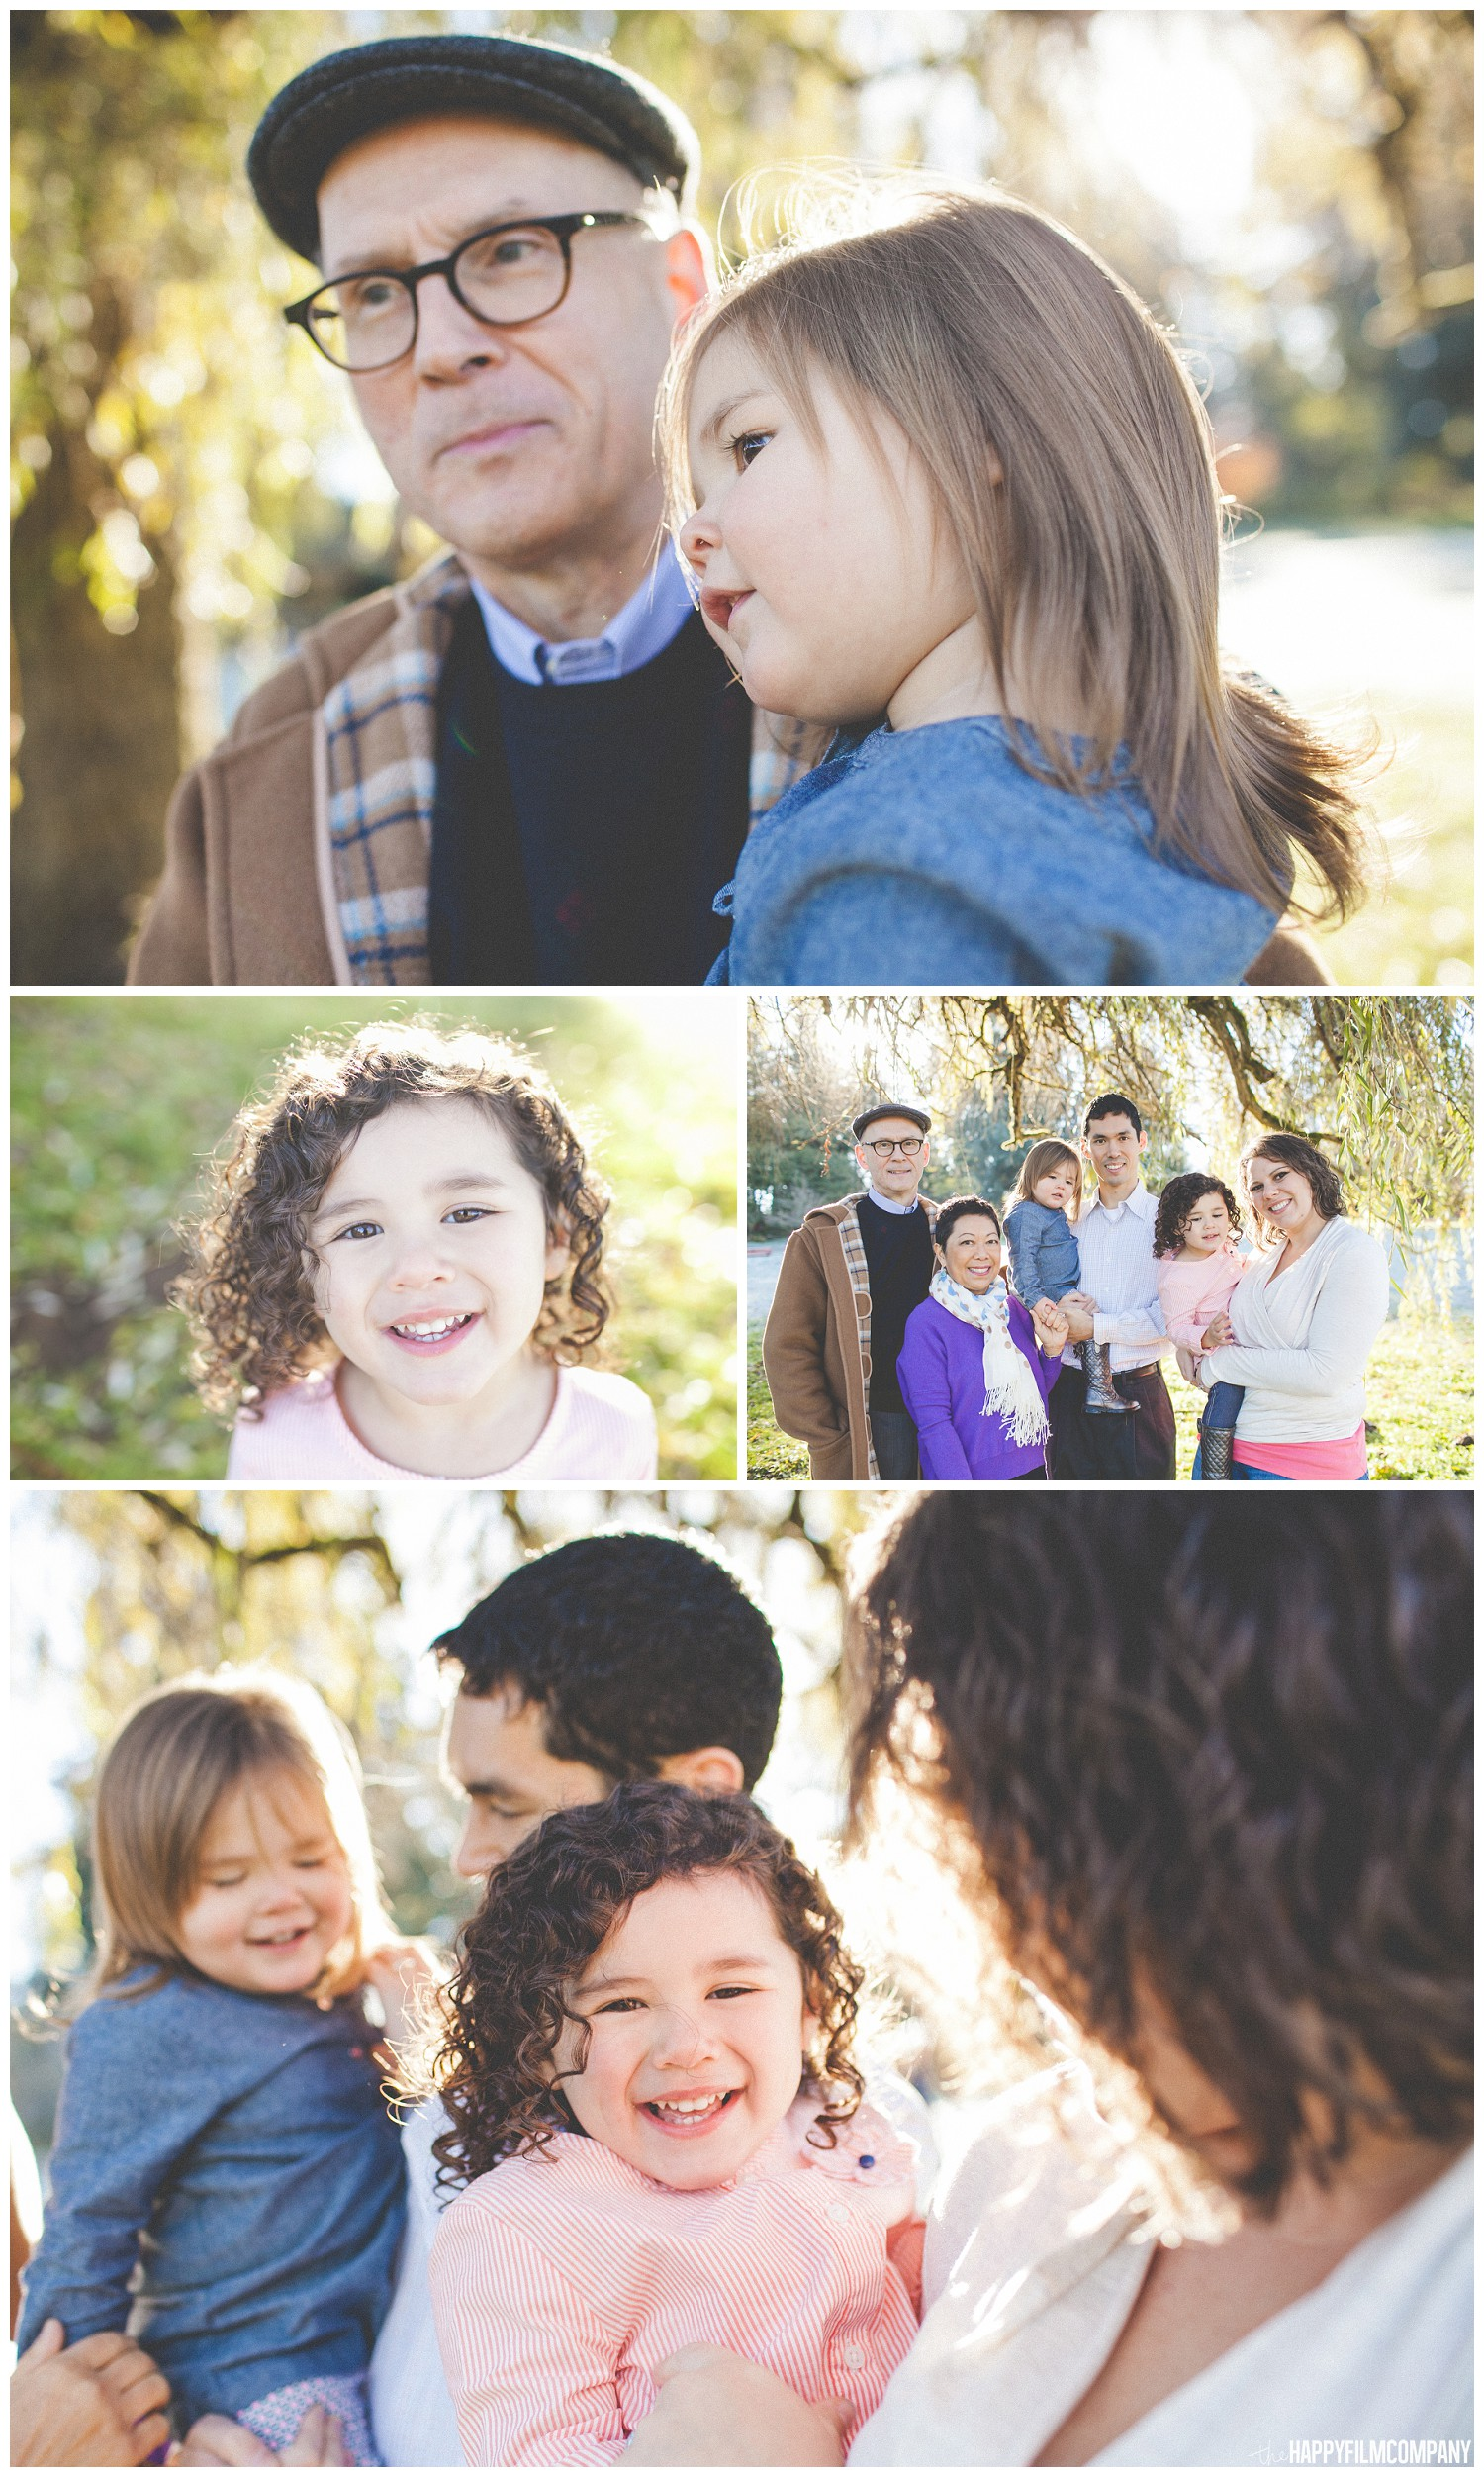 In these photos of the Evans Family, you can see the sunlight is coming from behind them and creating a beautiful rim of light around their heads.